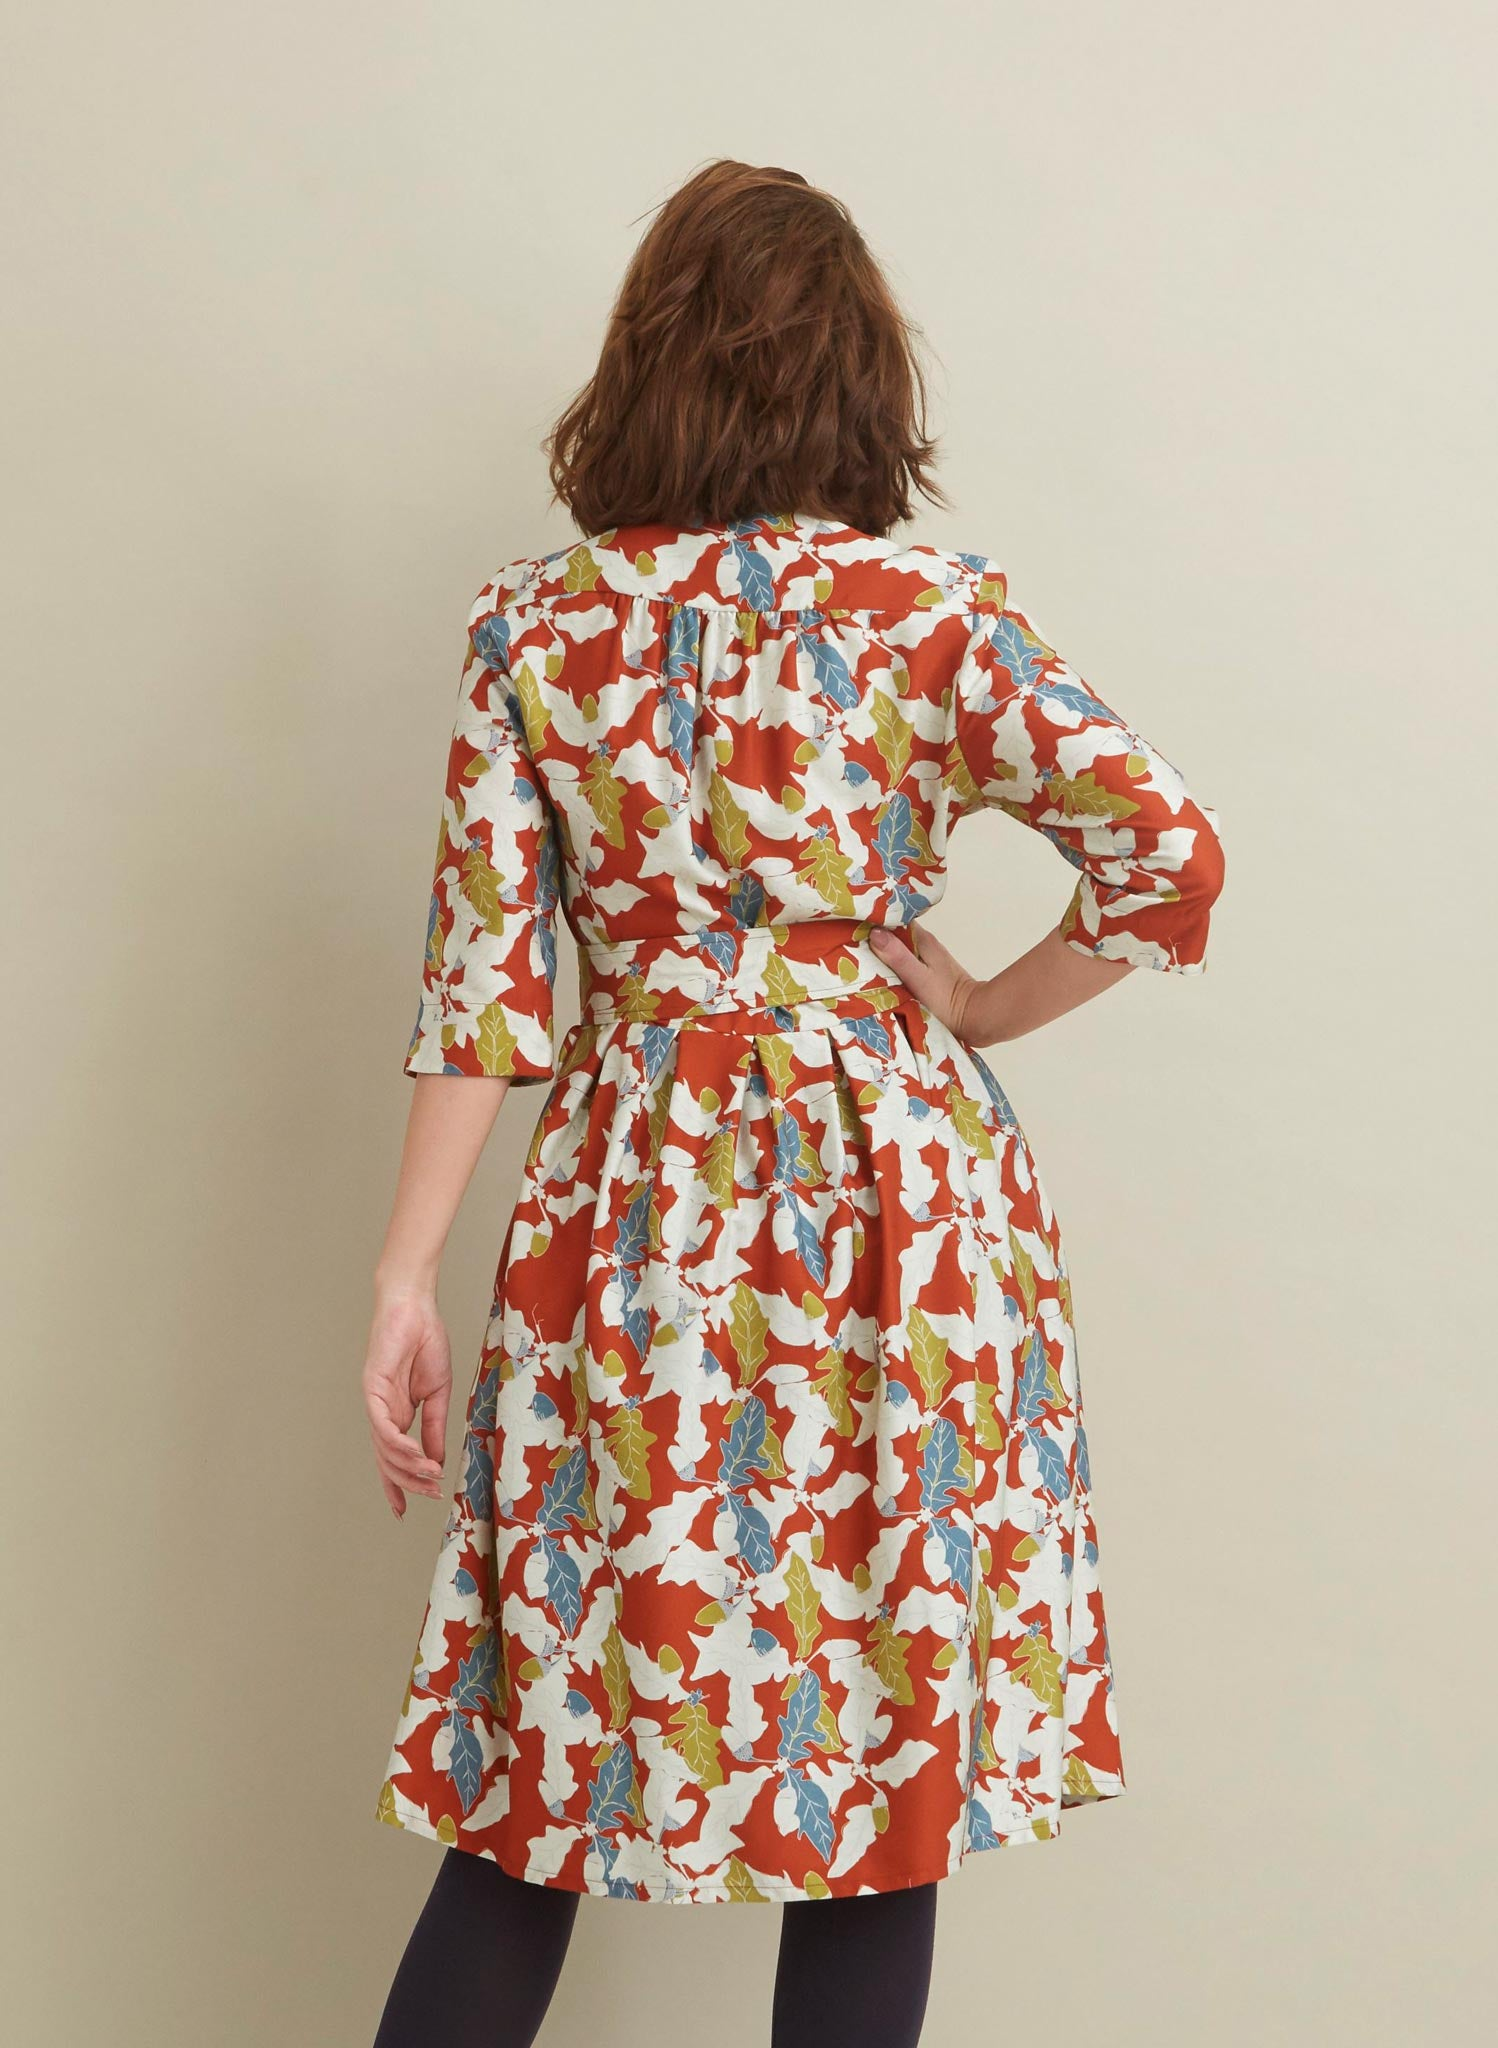 Cynthia - Rust Acorn Dress - Tencel